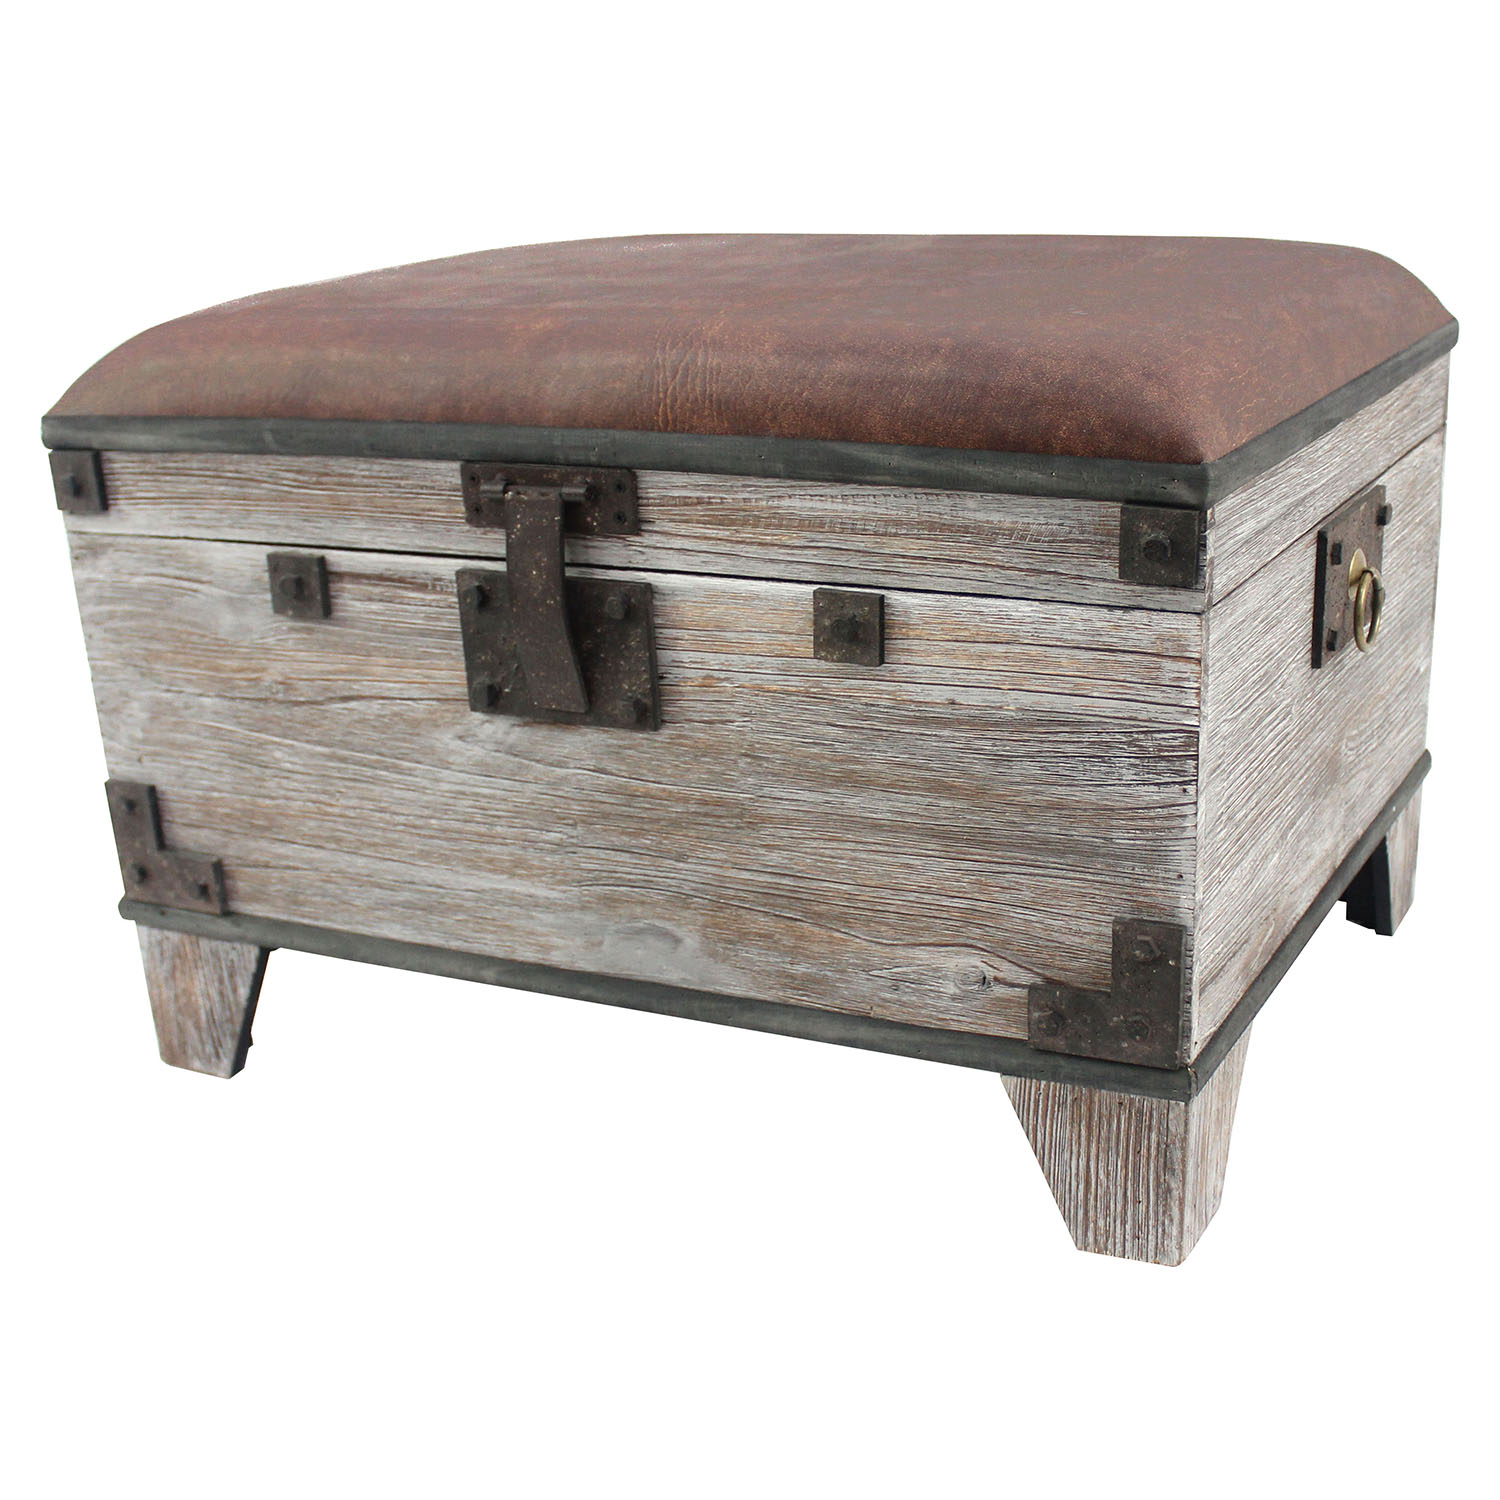 Wooden Ottoman With Storage Designs ~ Wood storage ottoman dcg stores